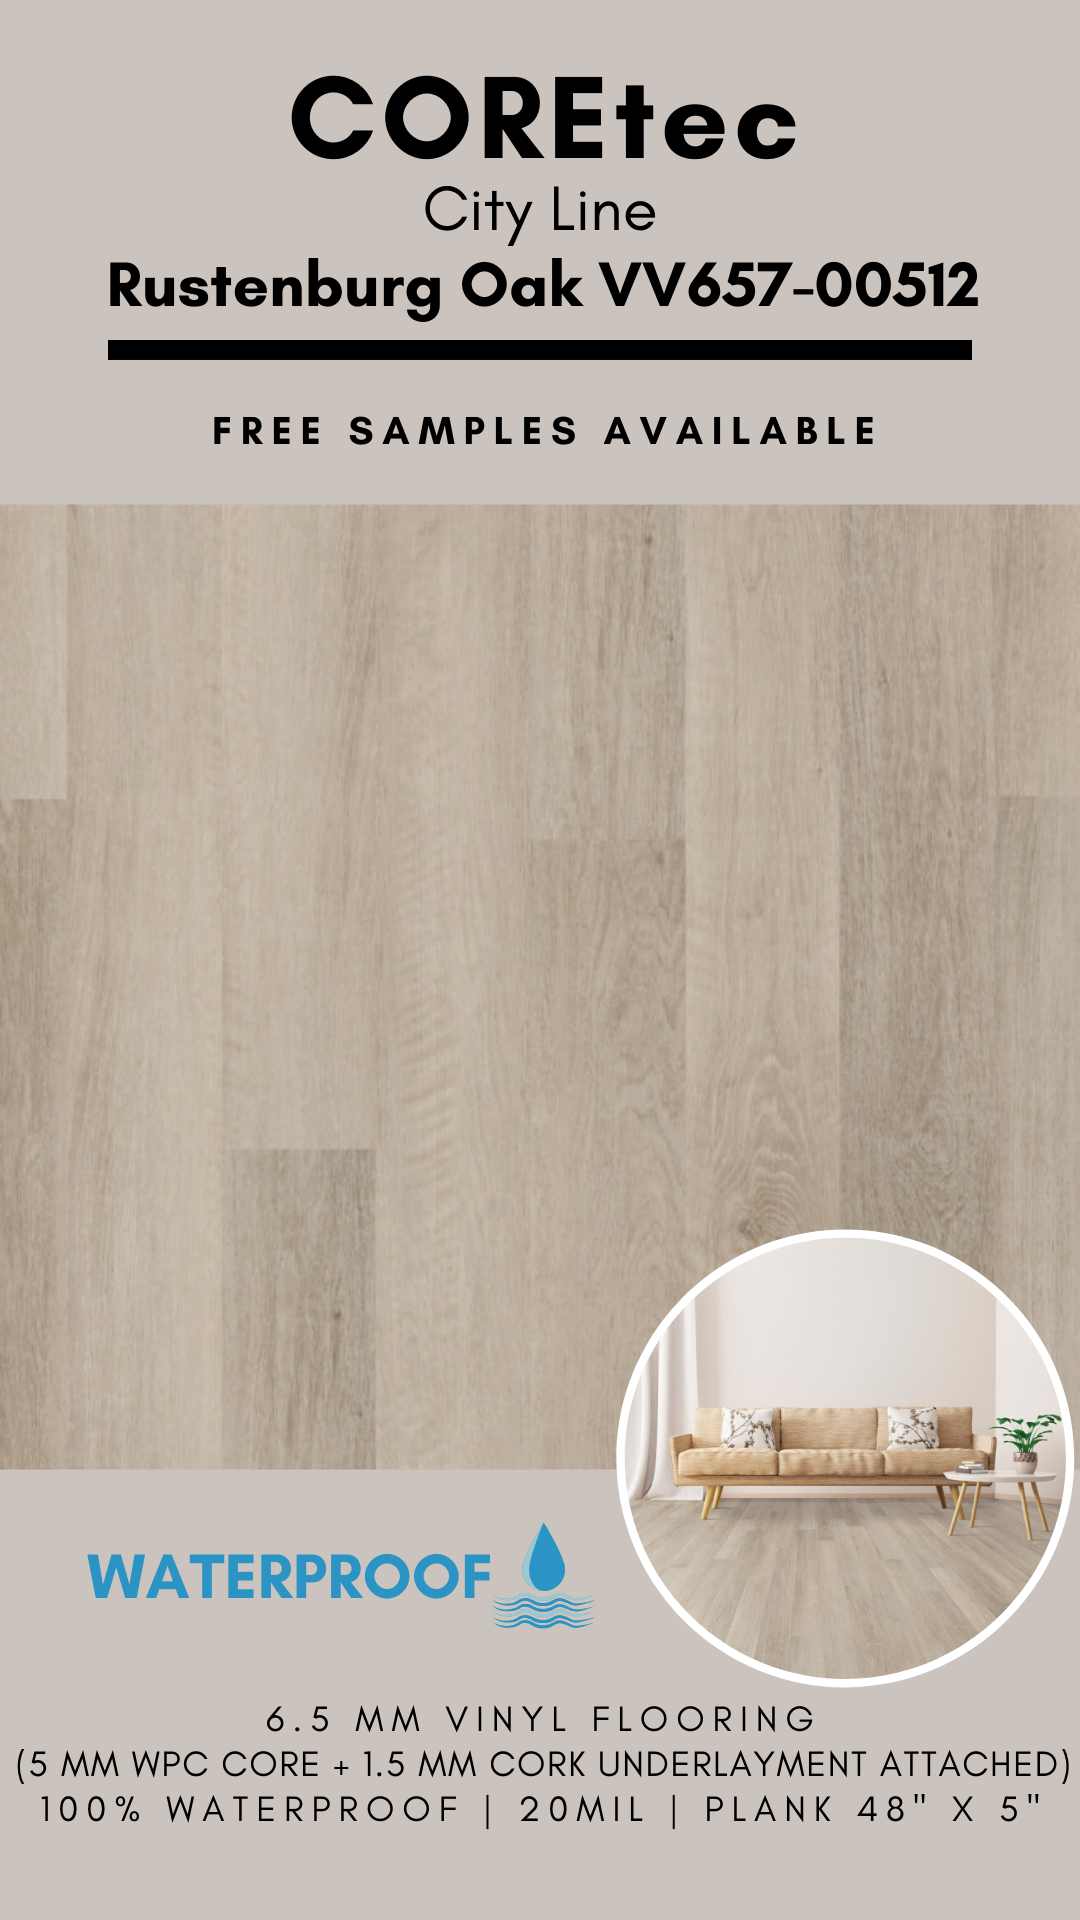 Coretec Plus 5 City Line Rustenburg Oak Vinyl Flooring In 2020 Vinyl Flooring Flooring Oak